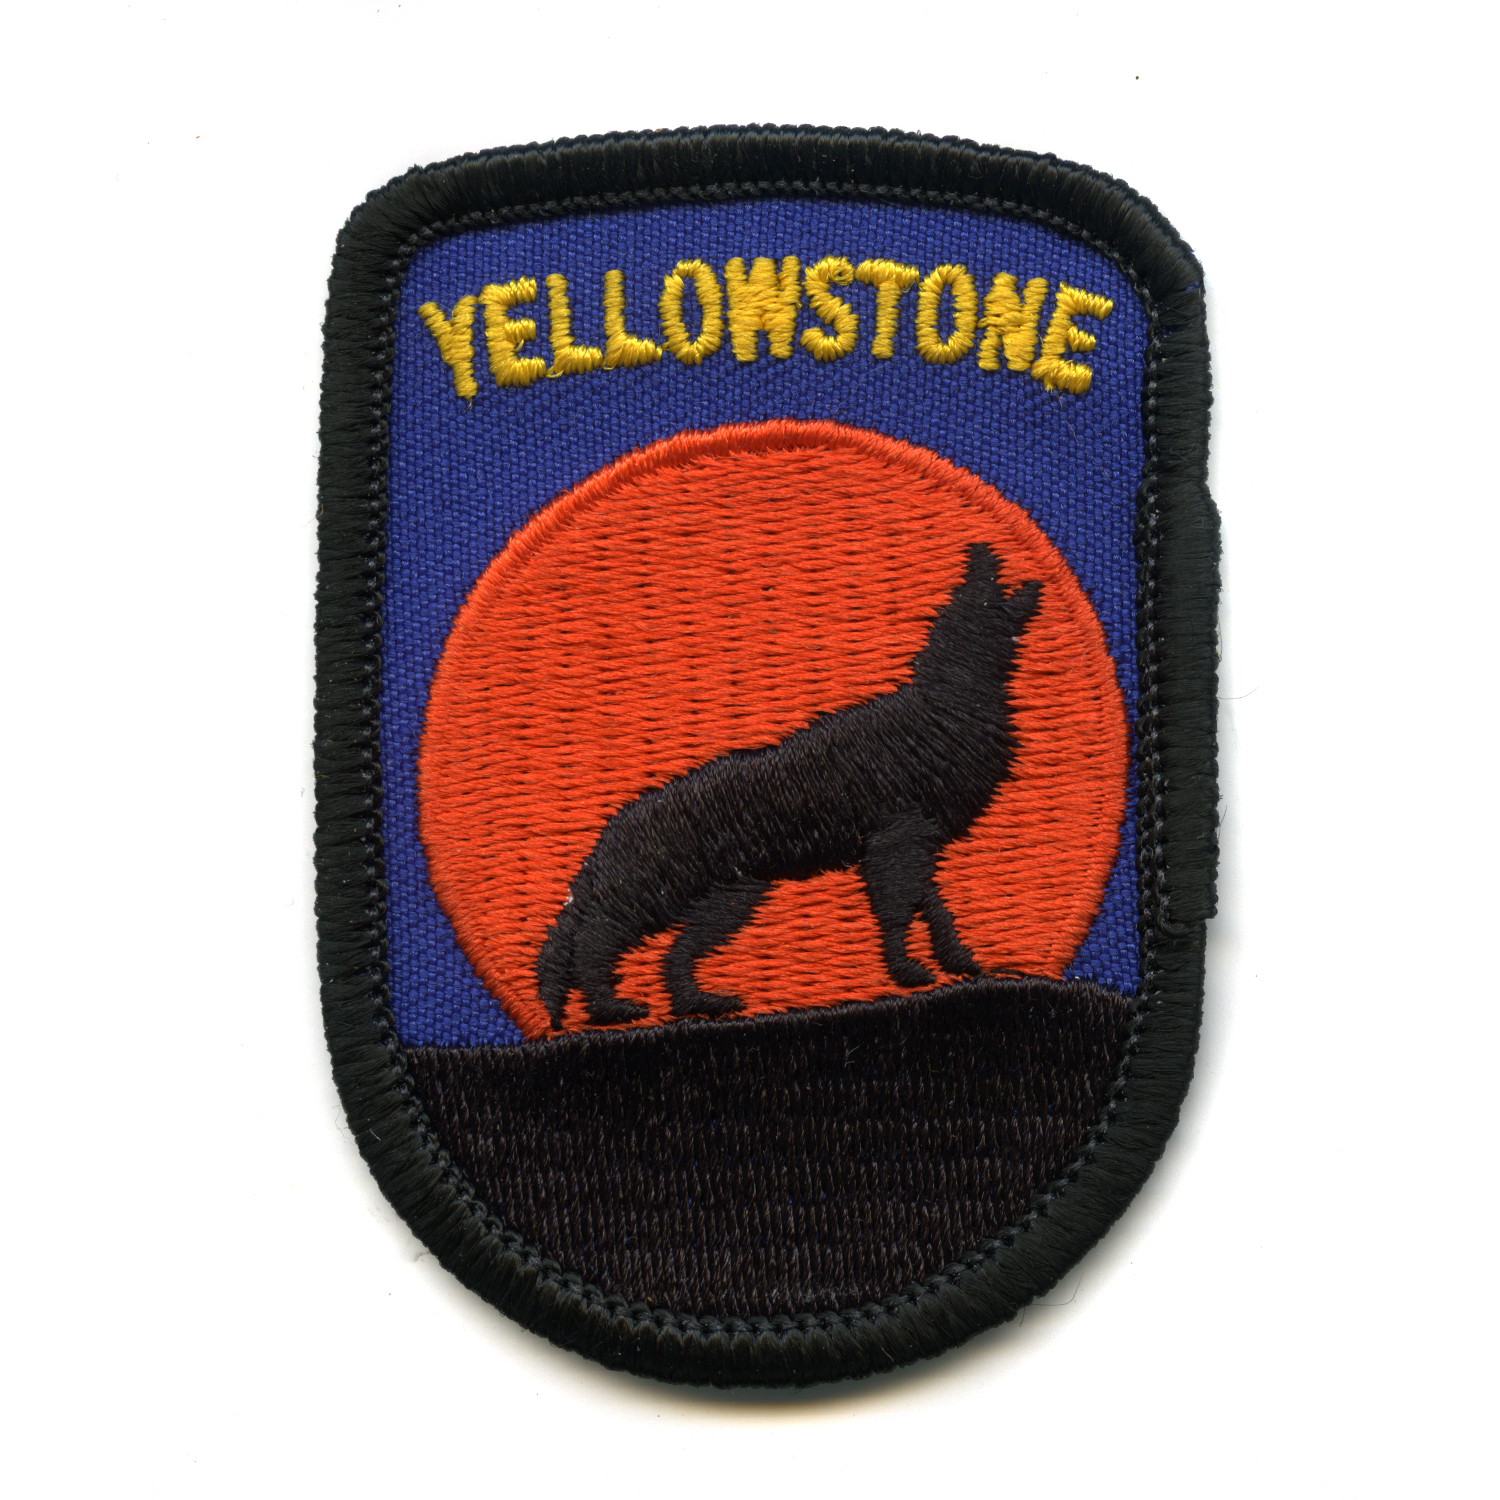 nps_patch_project_yellowstone_national_park_patch_5.jpg